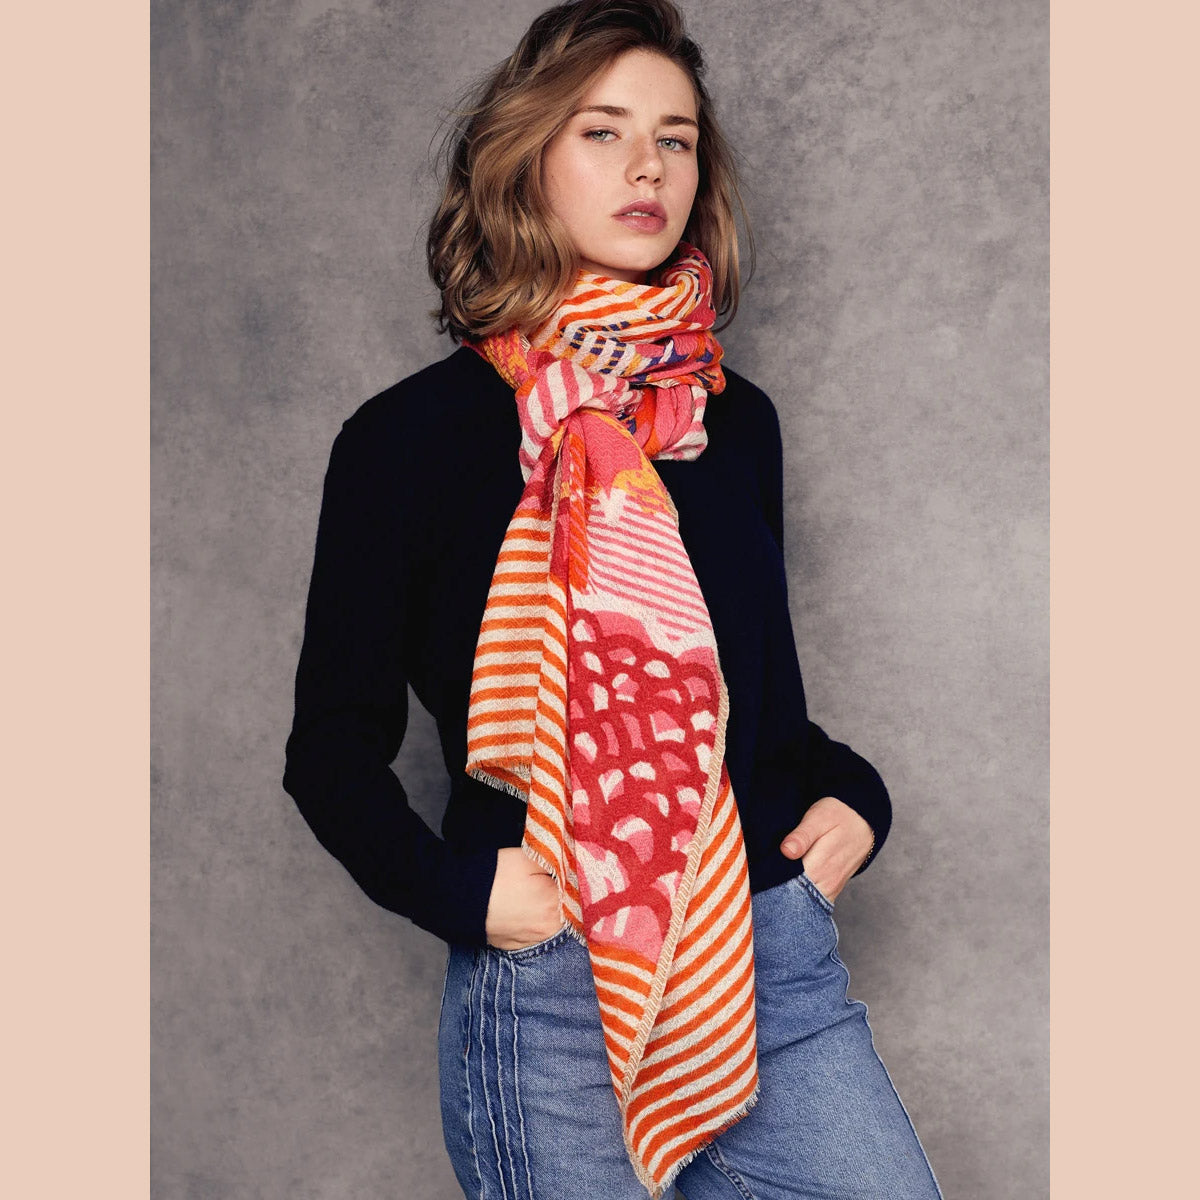 Céleste - Merino Wool Scarf - Orange & Pink